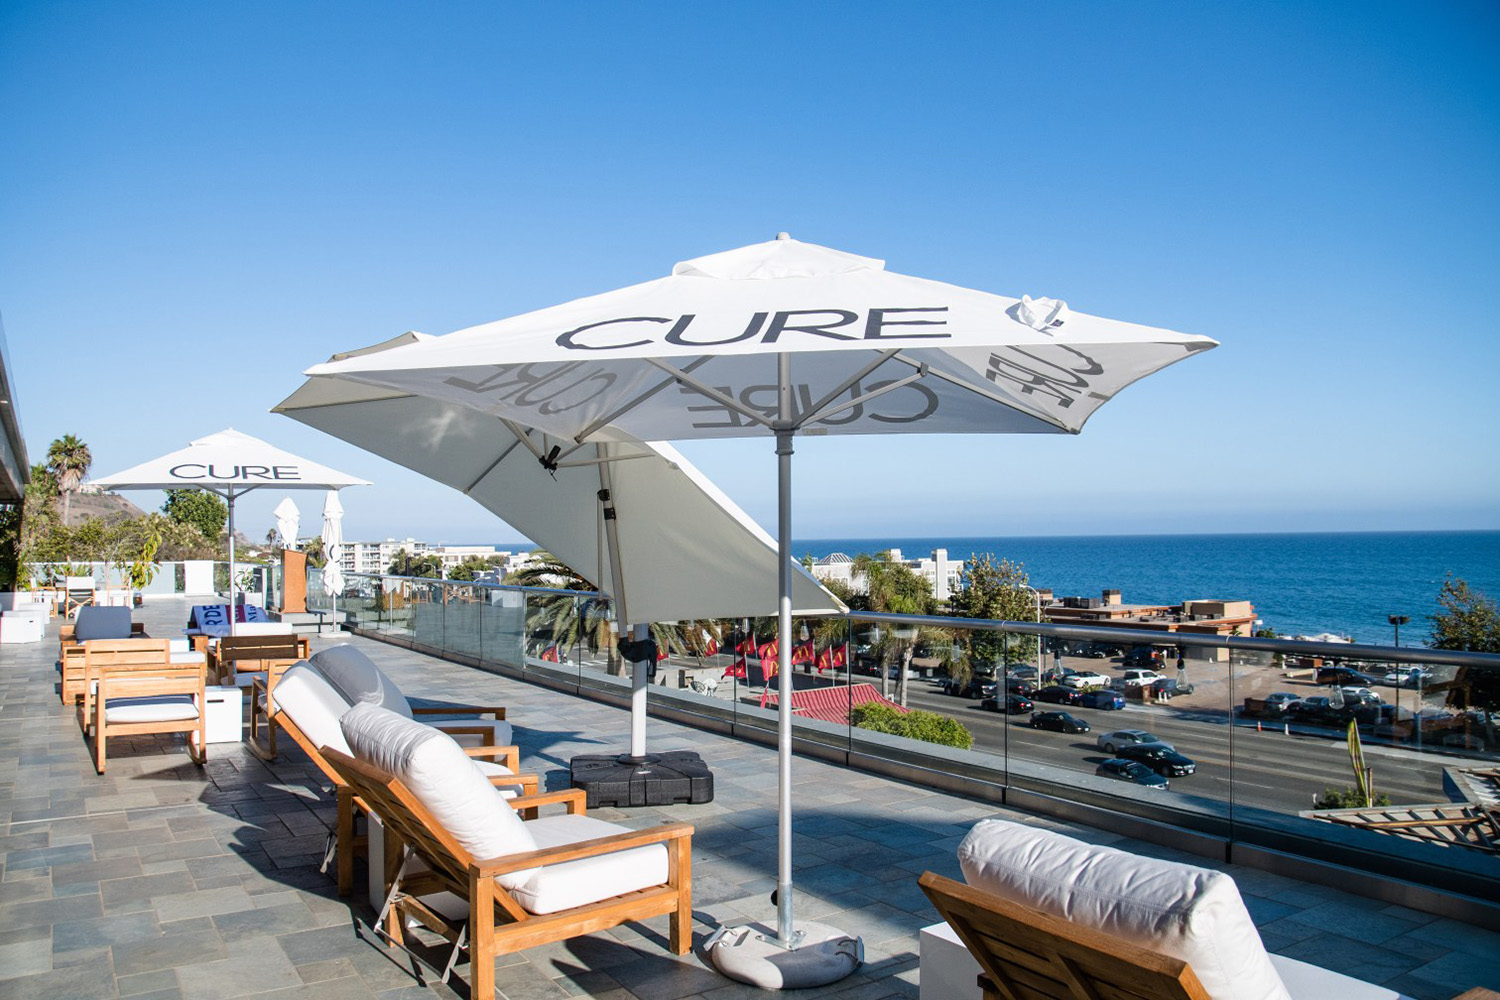 CURE is located directly across the street from Nobu Restaurant along Pacific Coast Highway in Malibu, California.